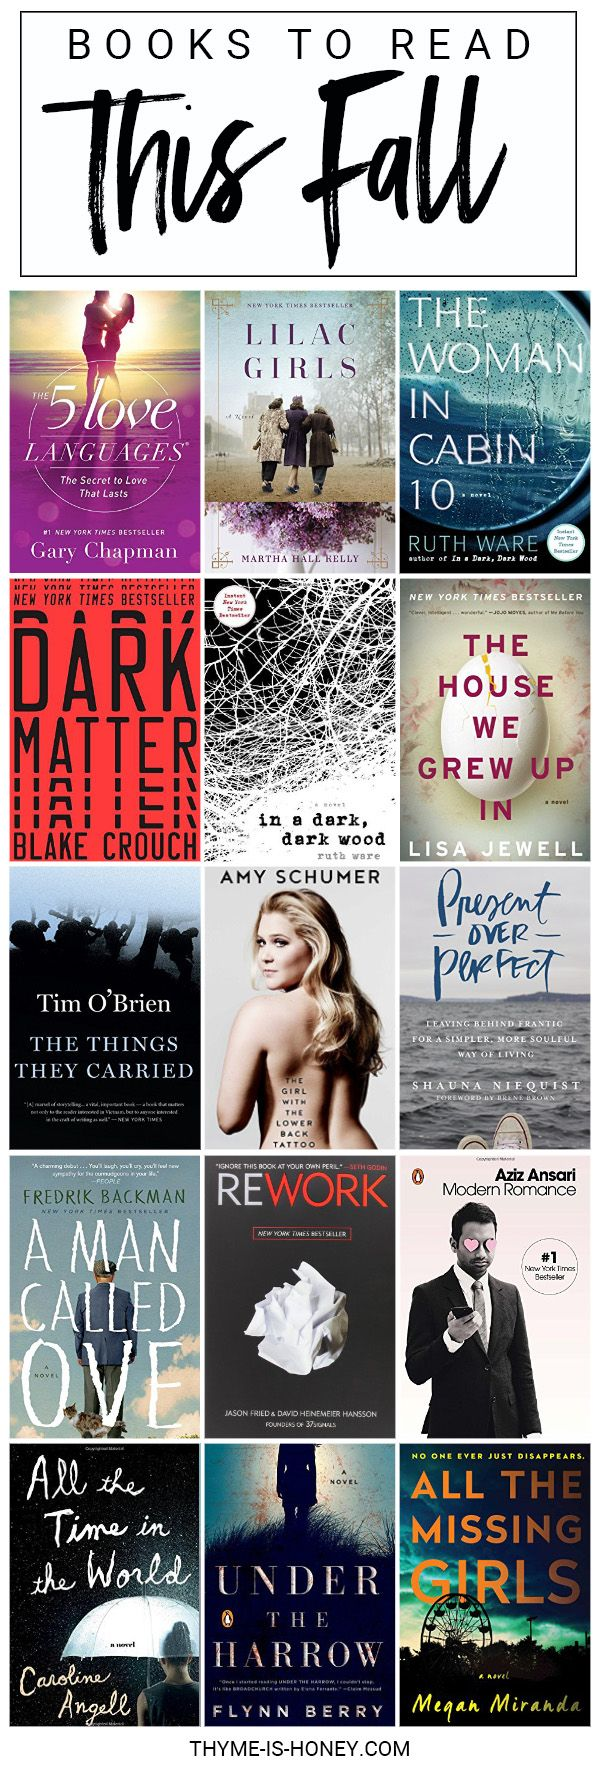 Books to Read Fall 2016 - 15 books to put onto your reading list.